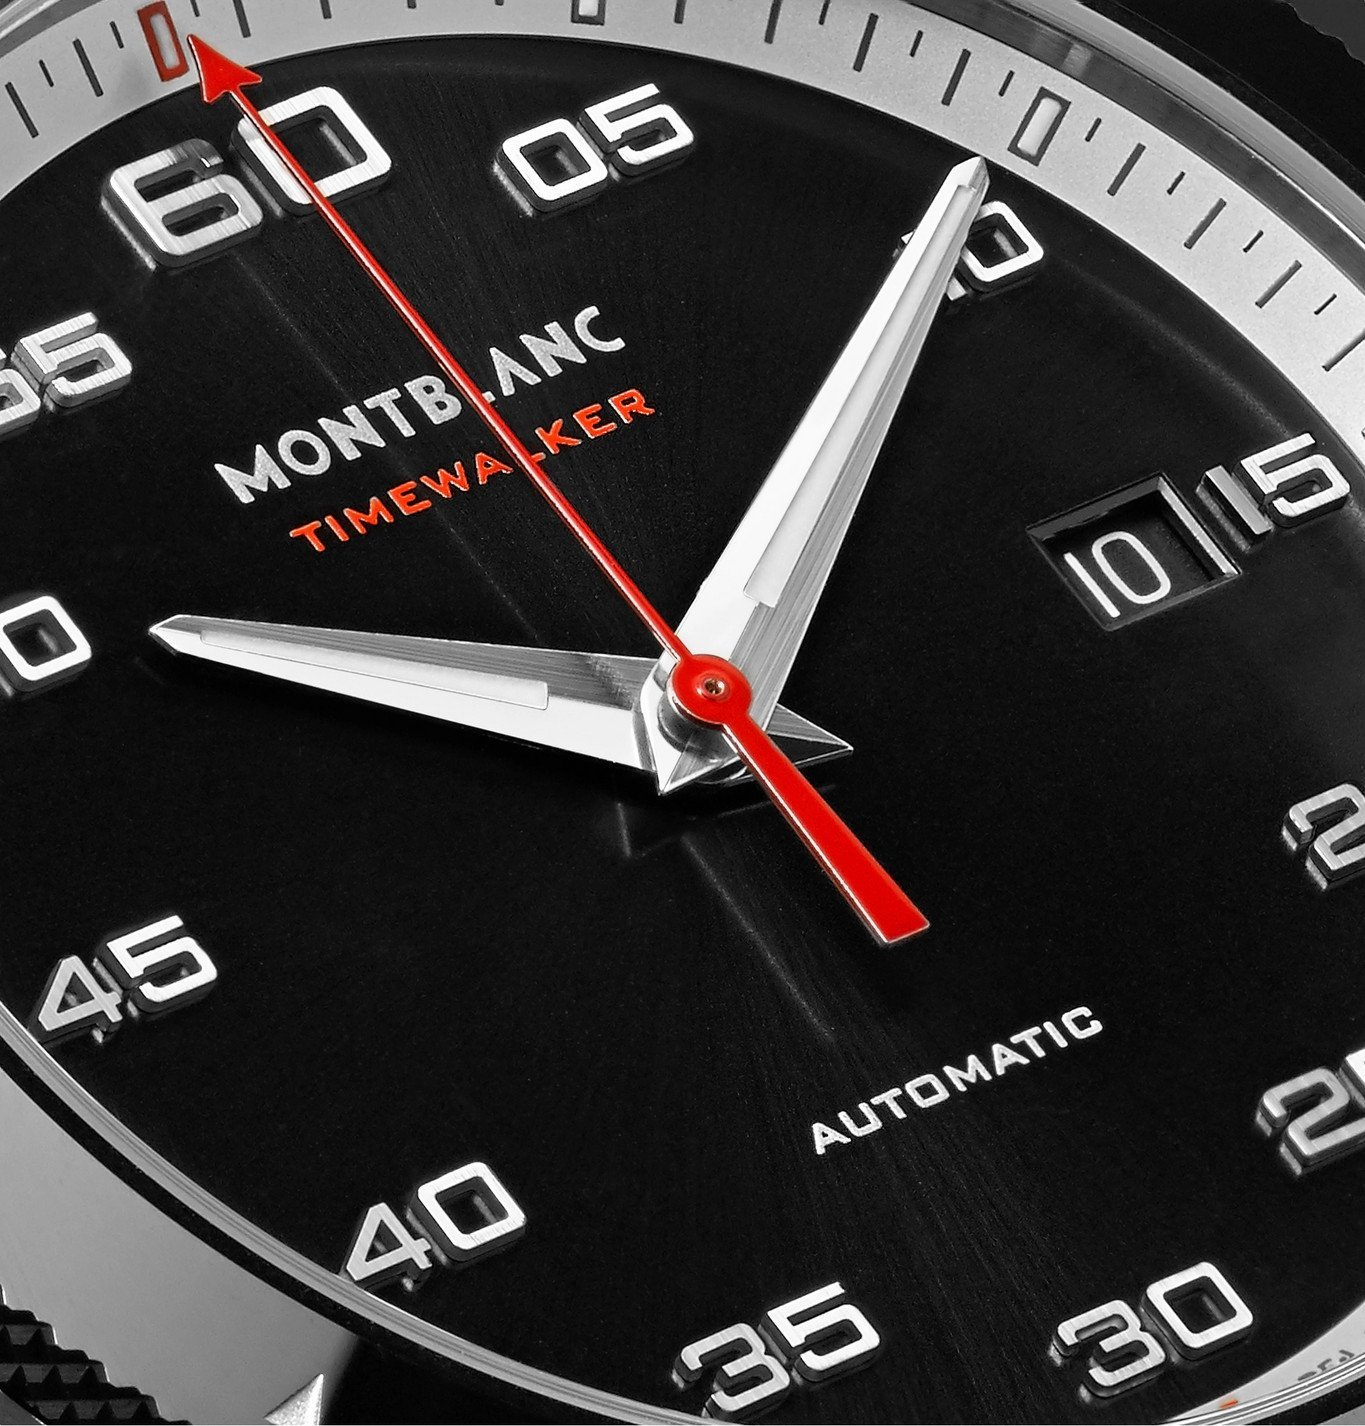 Montblanc - TimeWalker Date Automatic 41mm Stainless Steel, Ceramic and Rubber Watch, Ref. No. 116059 - Black